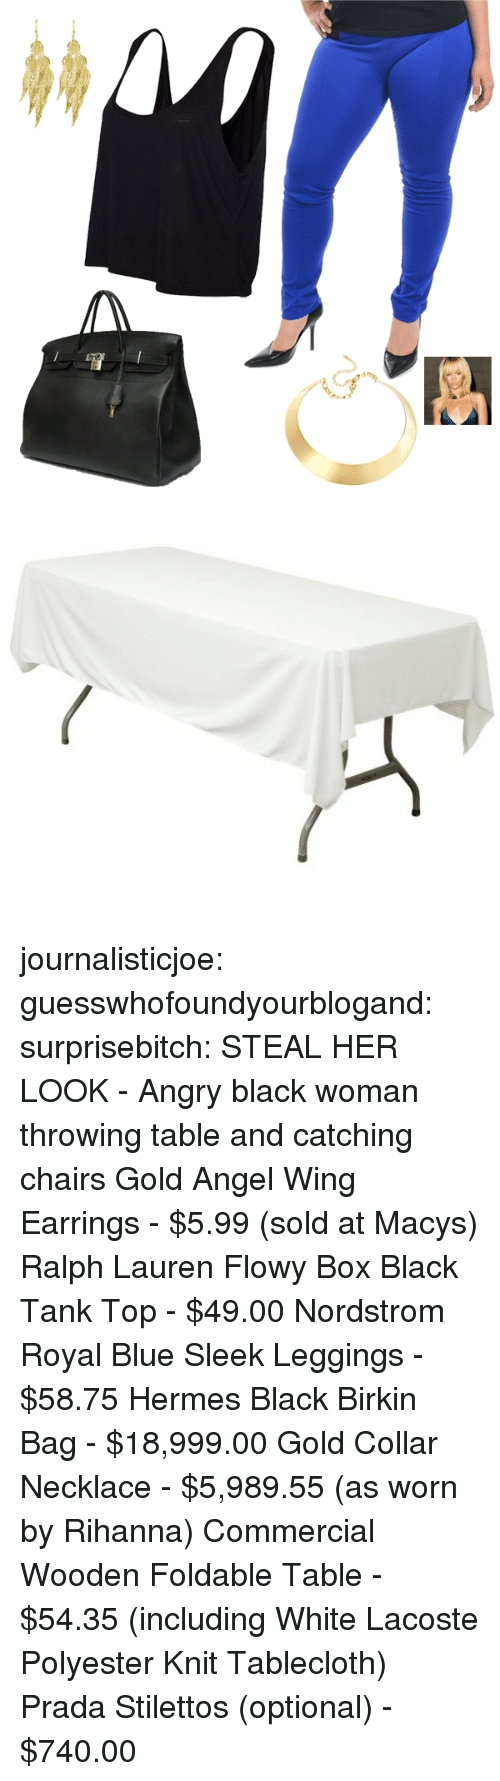 Ralph Lauren, Rihanna, and Target: journalisticjoe:  guesswhofoundyourblogand:  surprisebitch:  STEAL HER LOOK - Angry black woman throwing table and catching chairs Gold Angel Wing Earrings - $5.99 (sold at Macys) Ralph Lauren Flowy Box Black Tank Top - $49.00 Nordstrom Royal Blue Sleek Leggings - $58.75 Hermes Black Birkin Bag - $18,999.00 Gold Collar Necklace - $5,989.55 (as worn by Rihanna) Commercial Wooden Foldable Table - $54.35 (including White Lacoste Polyester Knit Tablecloth) Prada Stilettos (optional) - $740.00